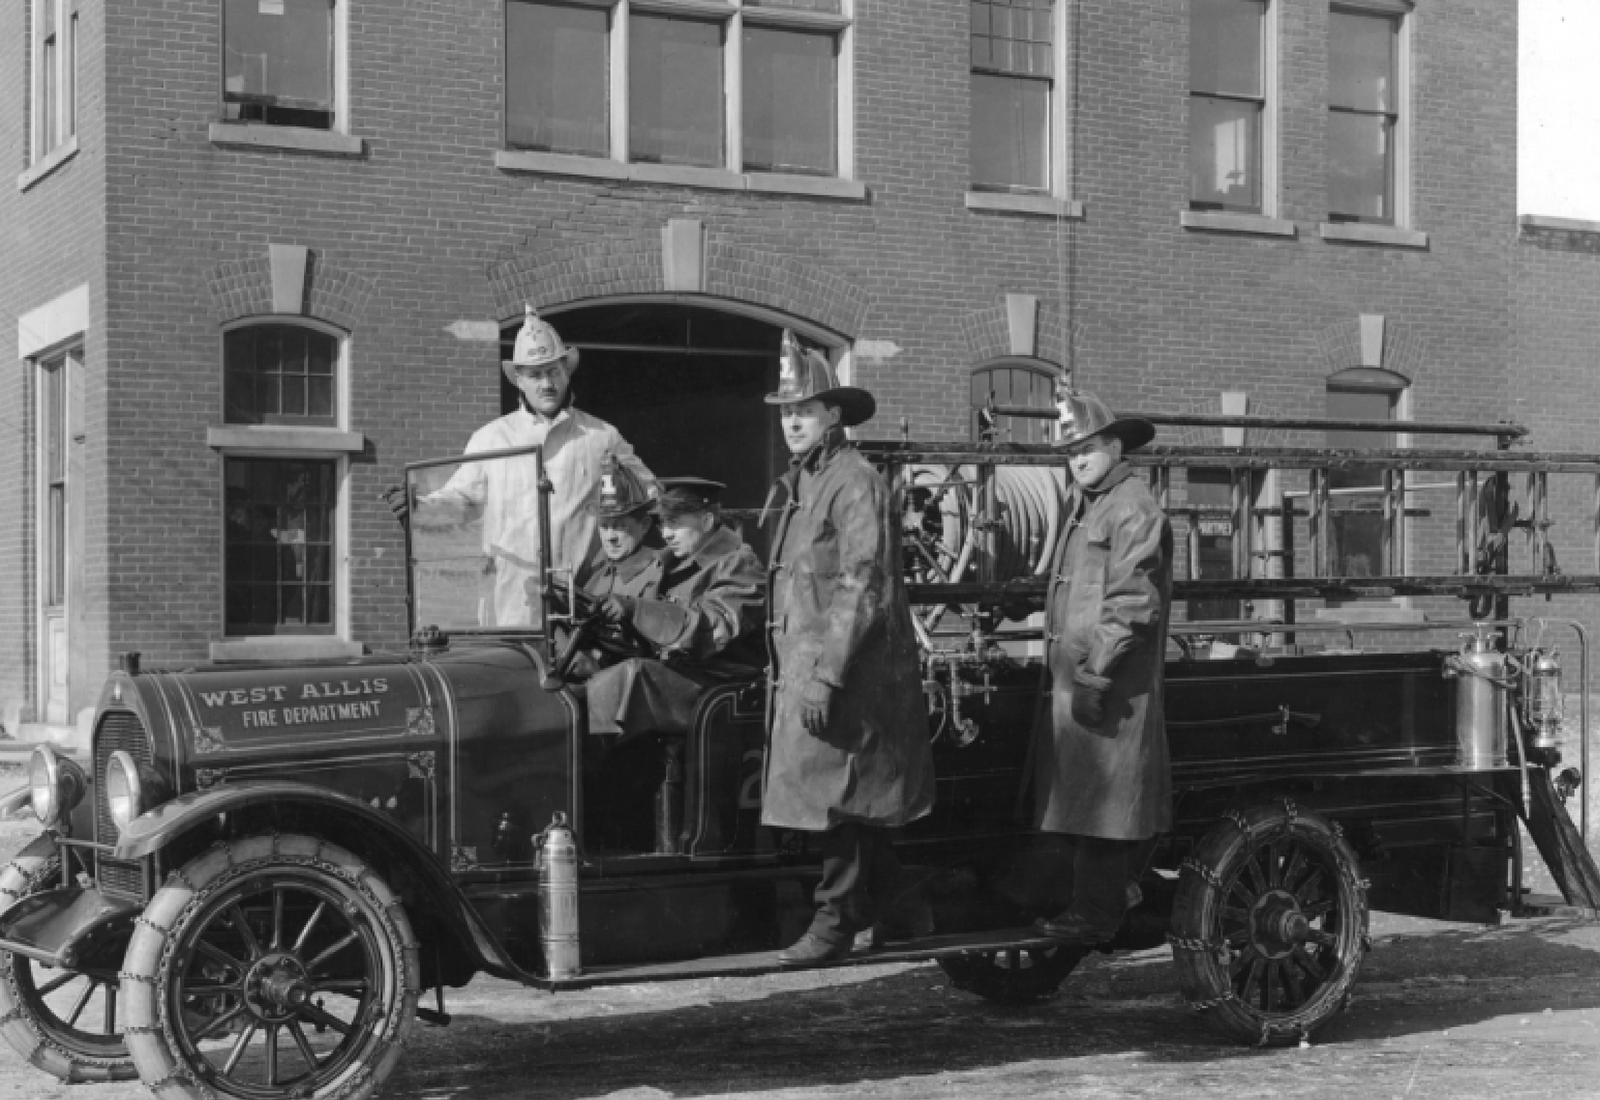 photo of west allis fire department in the early 1900s